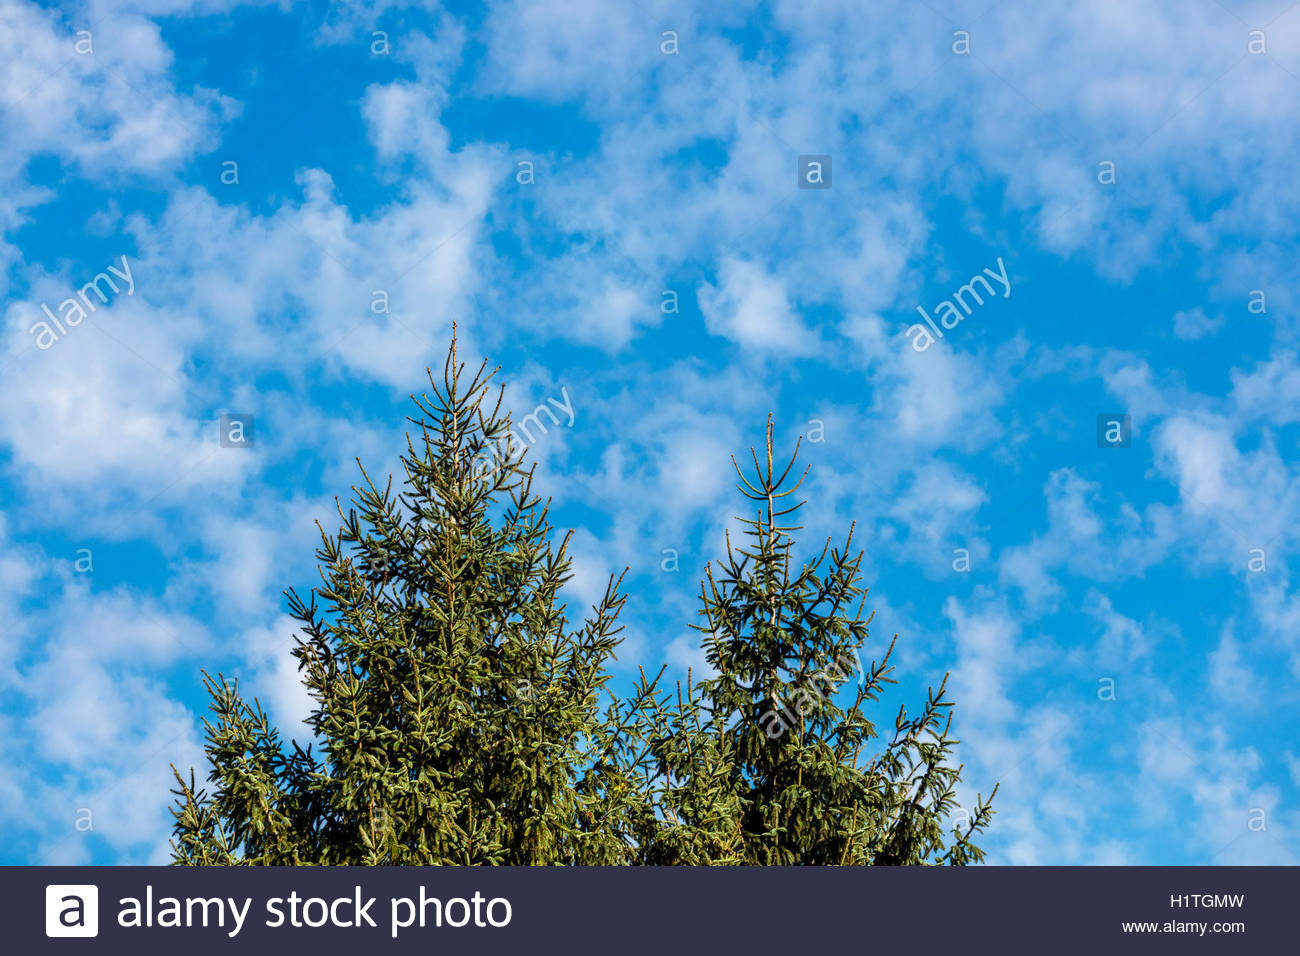 Tree and atmosphere. Concept of clean air carbon cycle biosequestration carbon reduction CO2 carbon storage - Stock Image